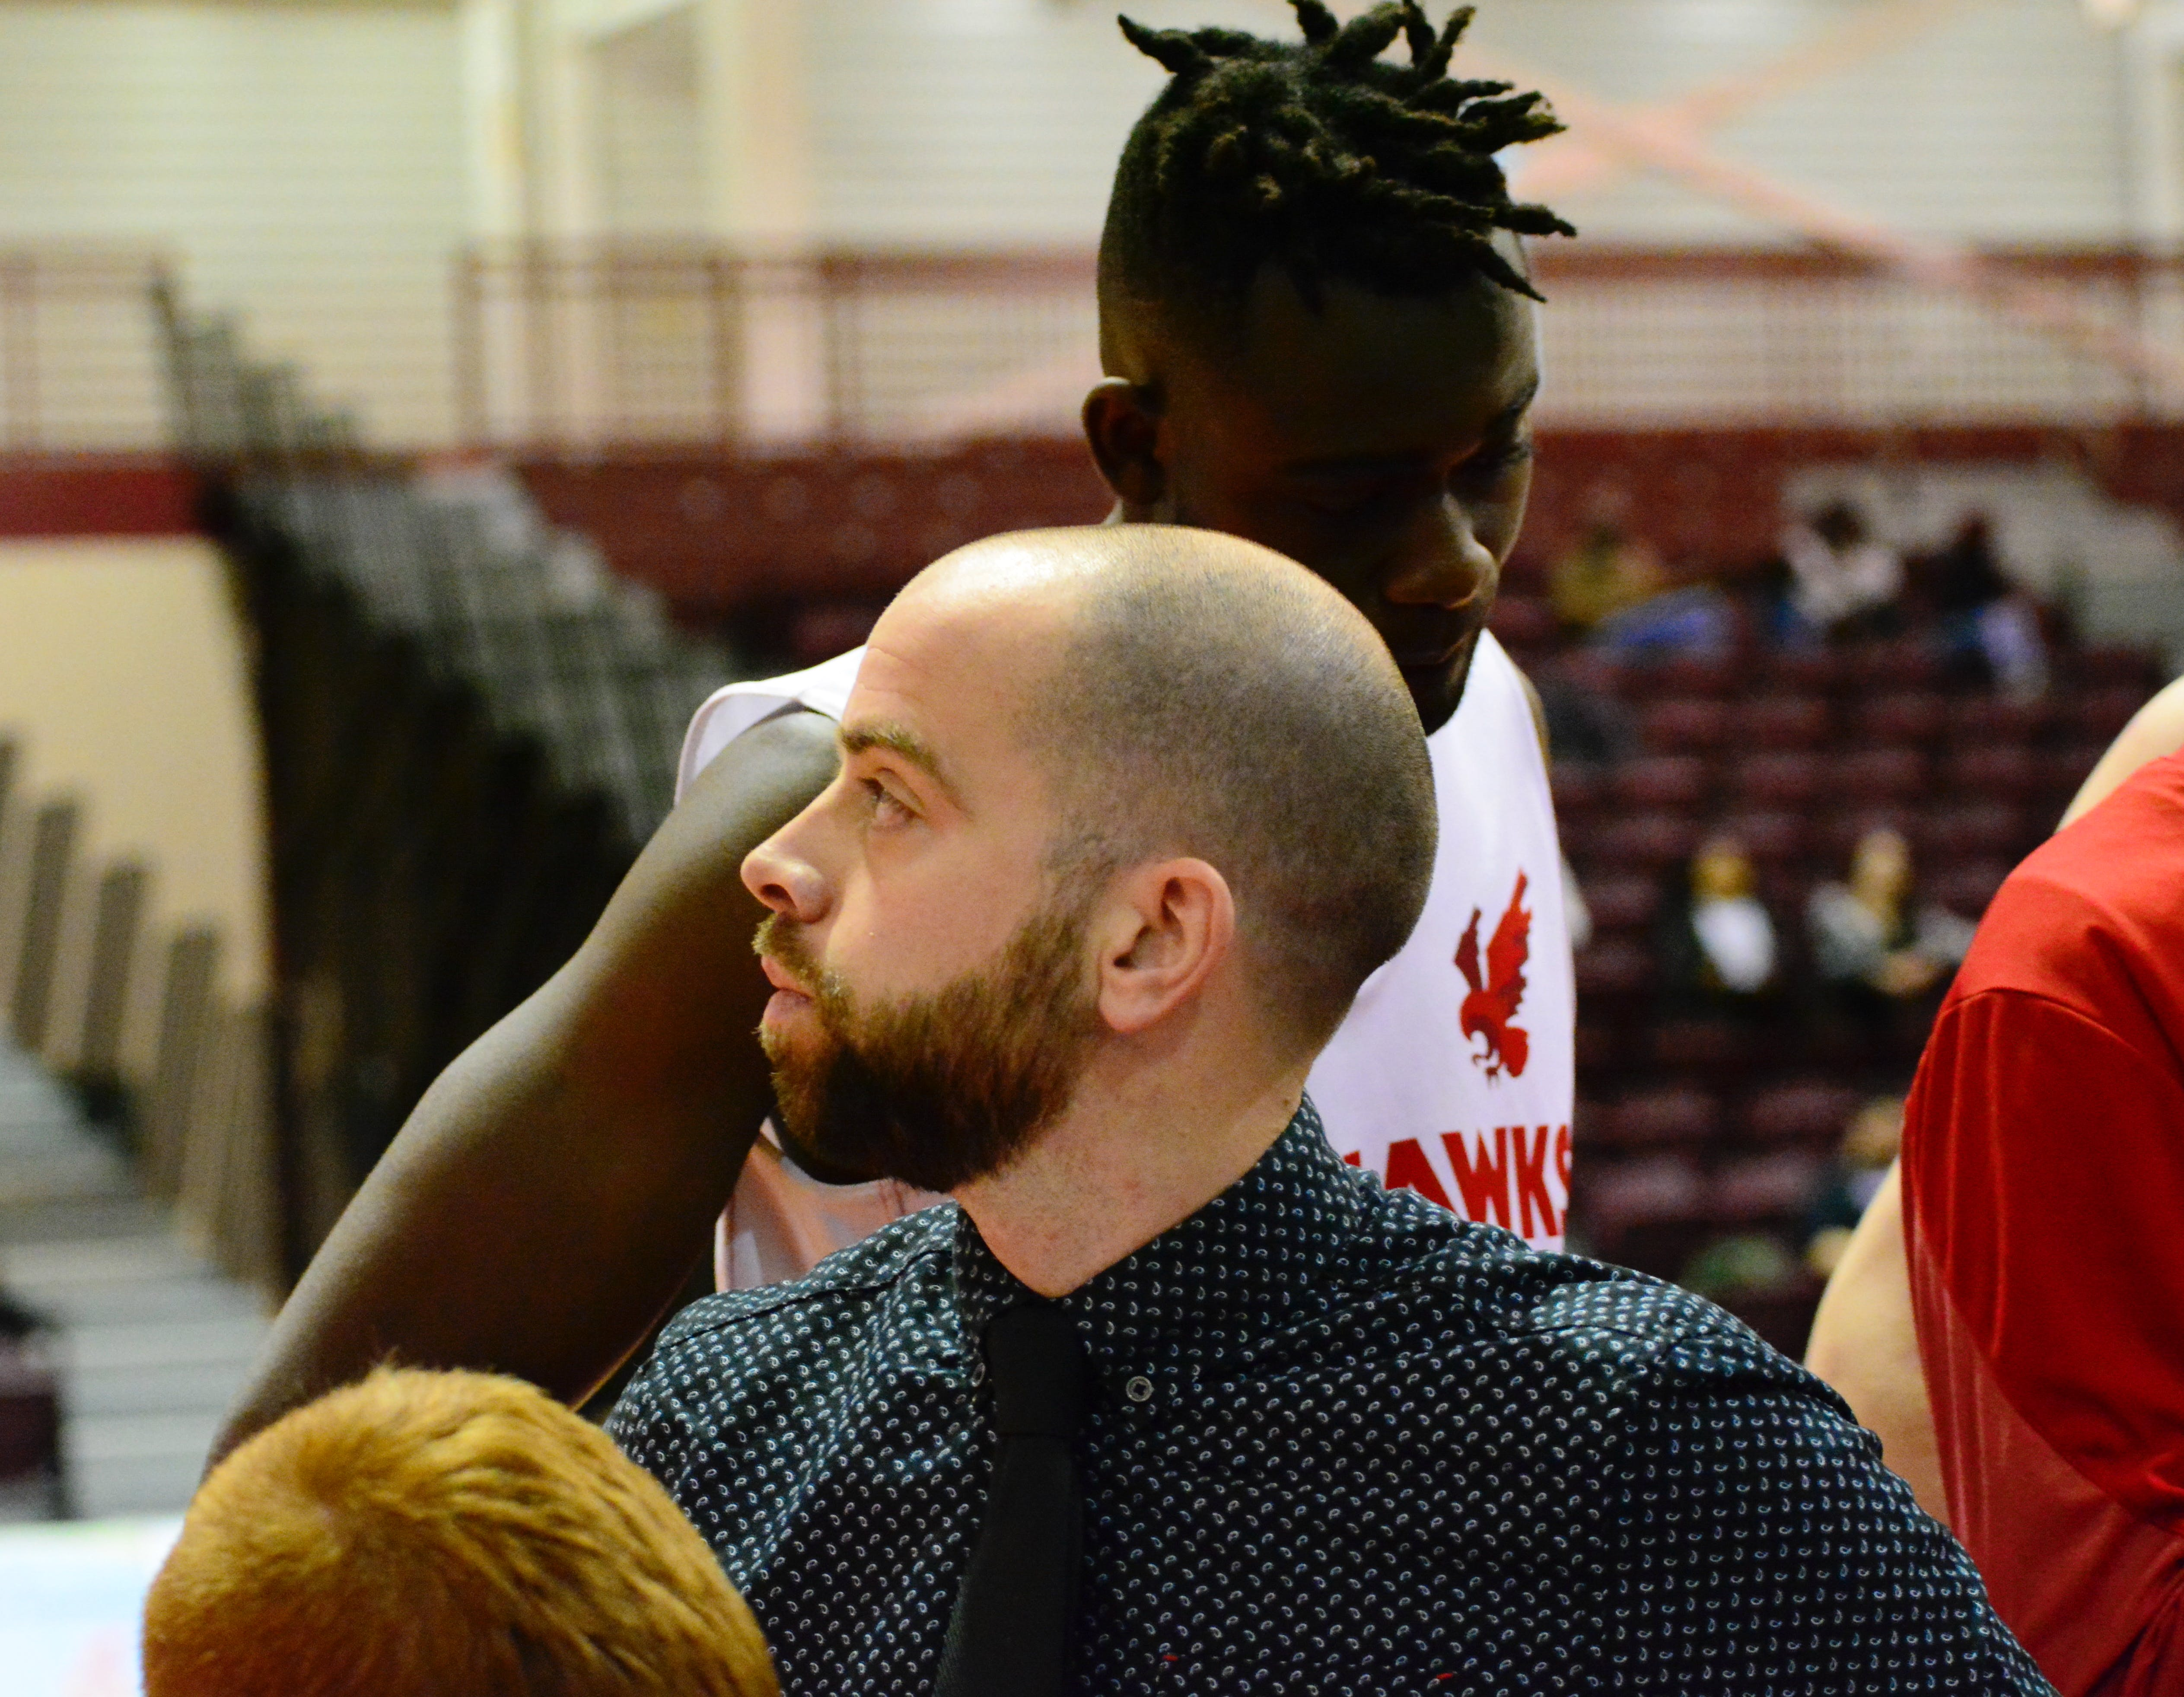 Ian Coultas has been an assistant coach with the Sea-Hawks for the last three years. Before that, he was head coach at Gonzaga High, leading that school to a provincial title, and has been a long-time coach in provincial programs. — Memorial Athletics photo